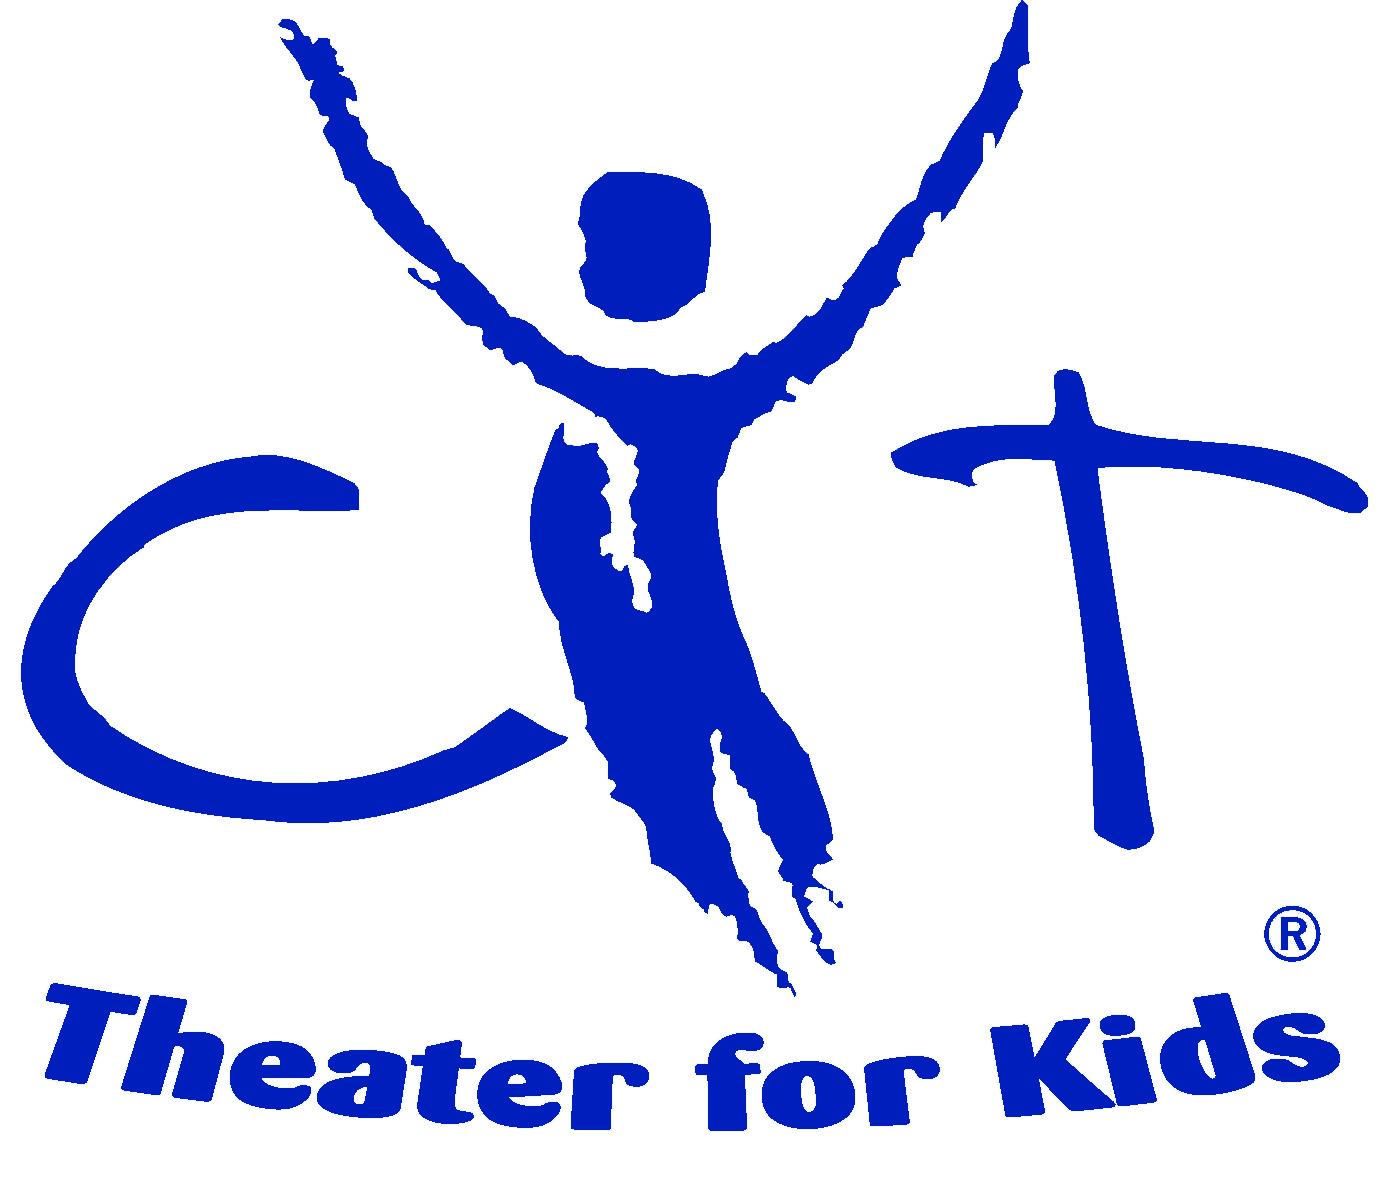 Christian Youth Theater of Fredericksburg